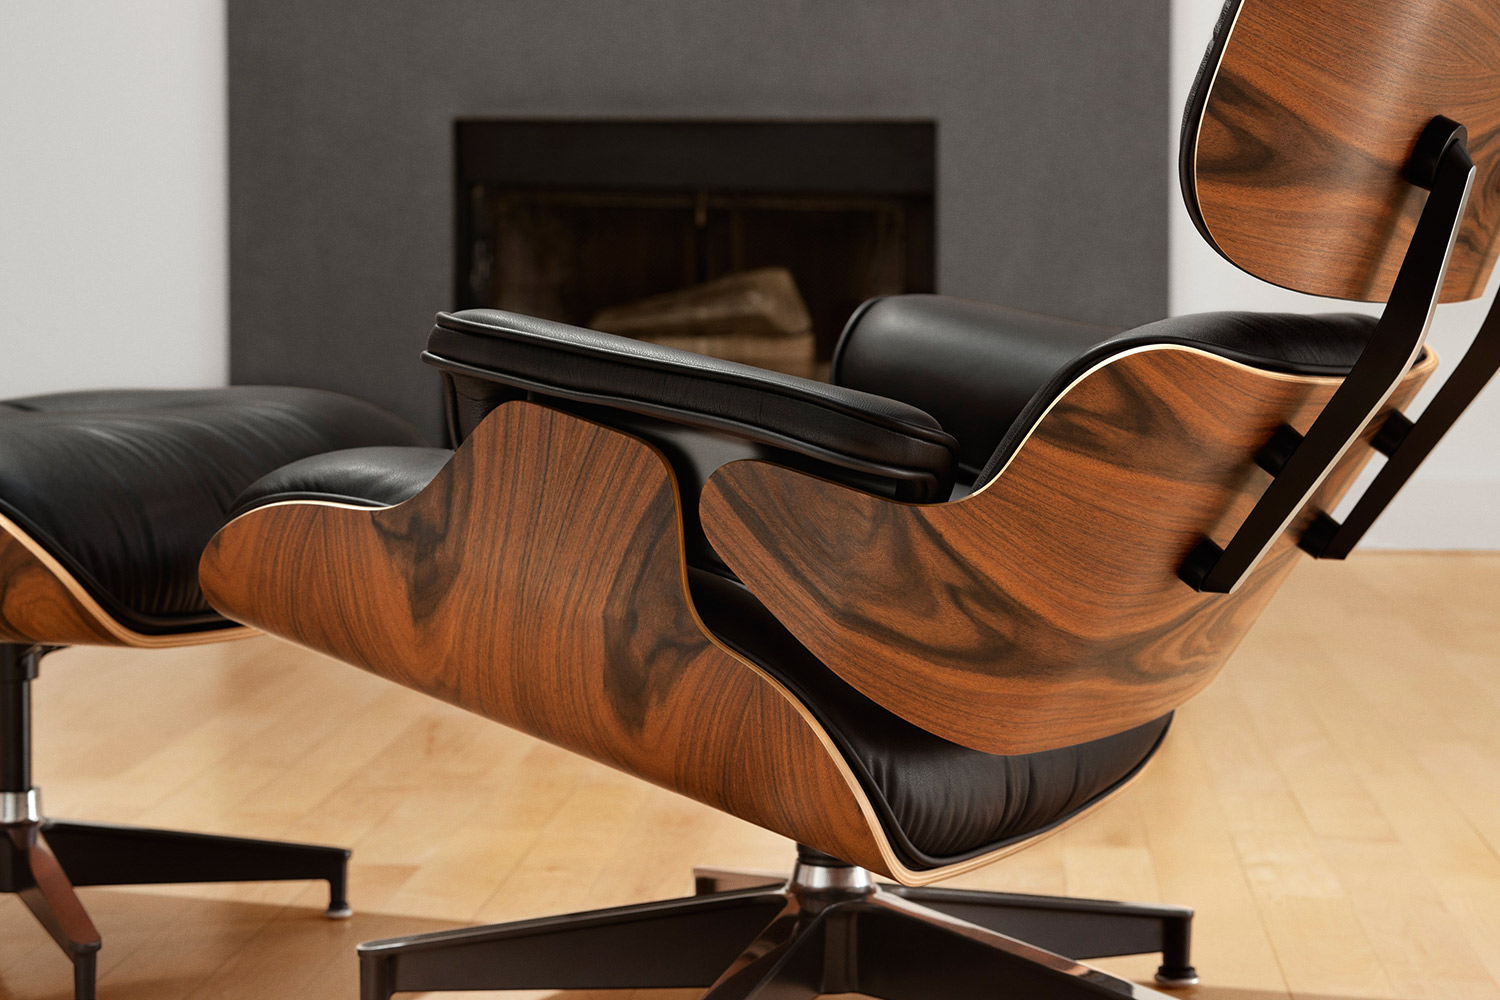 Attractive How To Tell If Your Eames Lounge Chair Is Real Vs. Fake